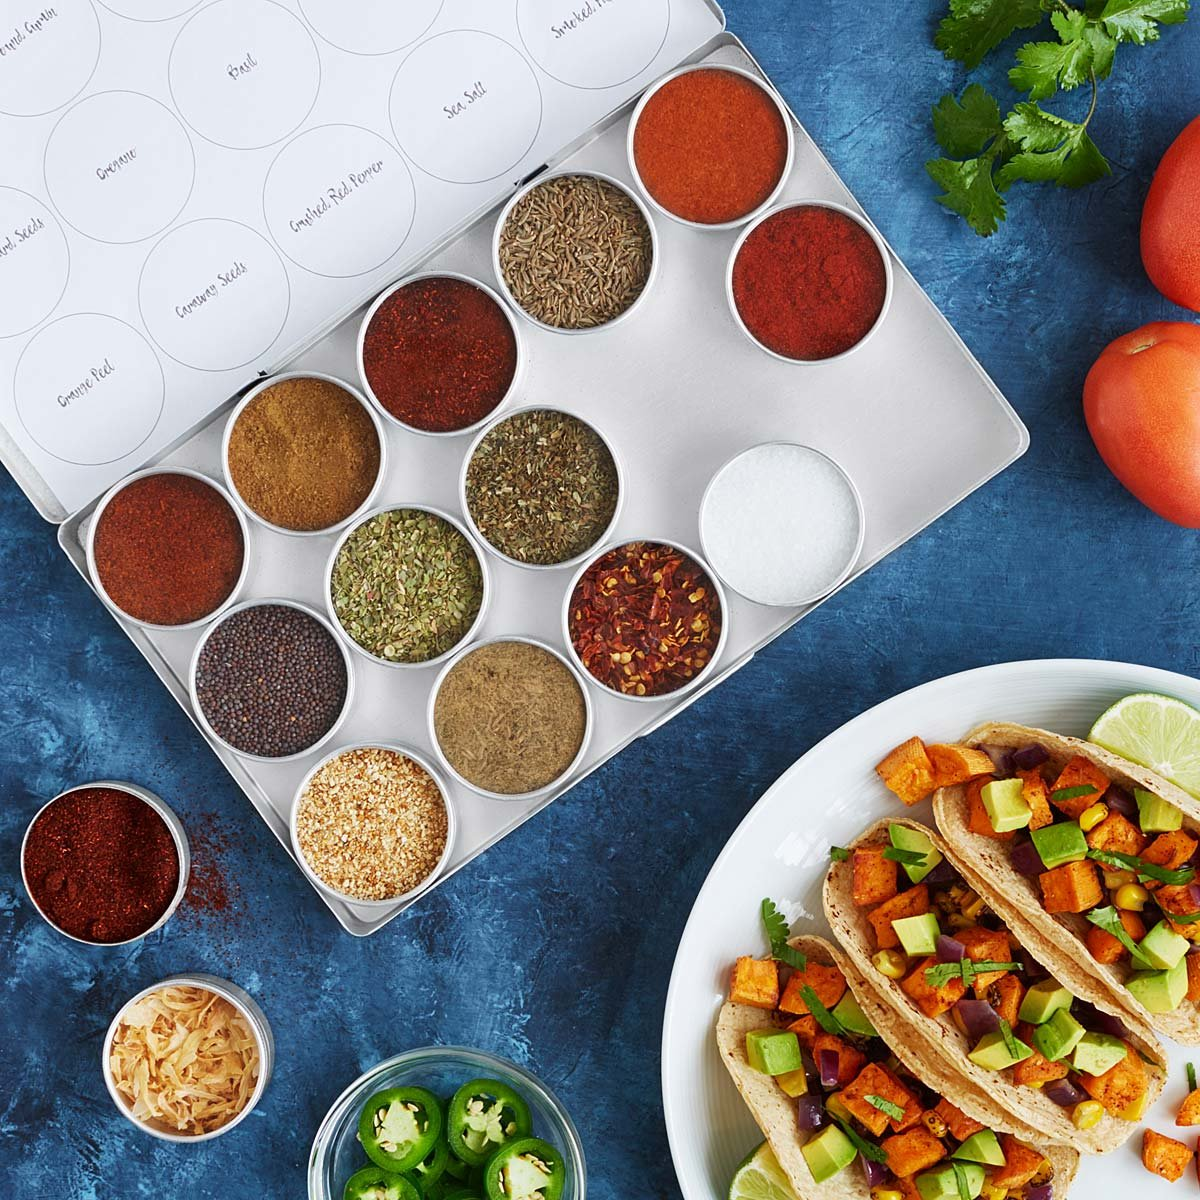 <p>Because Taco Tuesday is a real thing - duh.{&nbsp;} Opt for this Global Taco Seasoning Kit. 15 tins contain all the seasonings he'll need, plus recipes, for five knockout tacos from around the world. $38.00 (Image: Uncommongoods)</p><p></p>